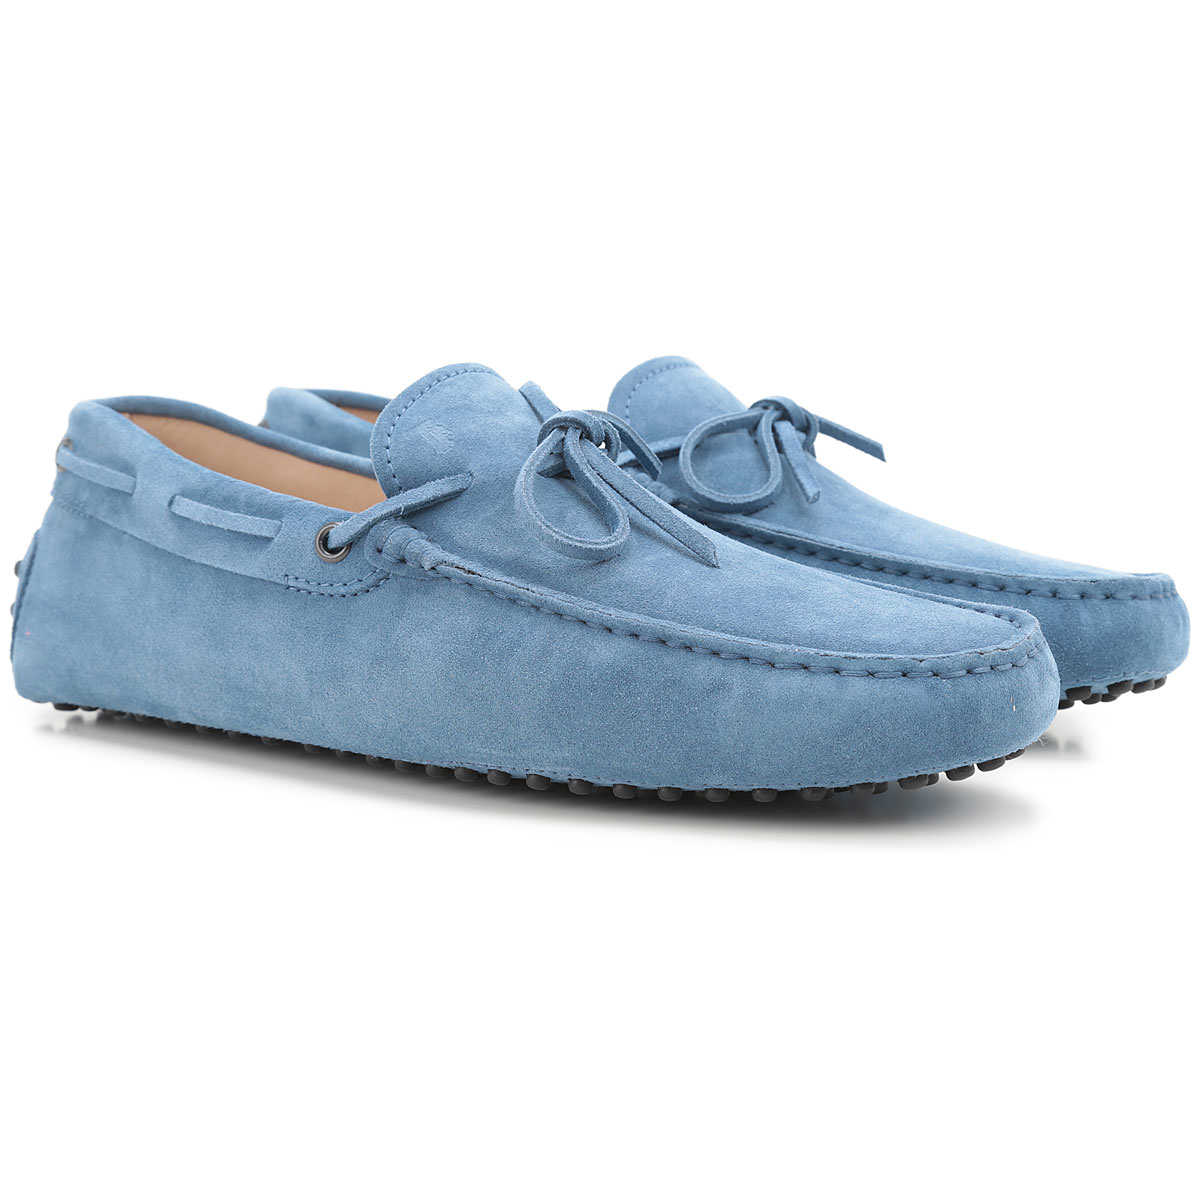 Tods Driver Loafer Shoes for Men On Sale Avio Blue - GOOFASH